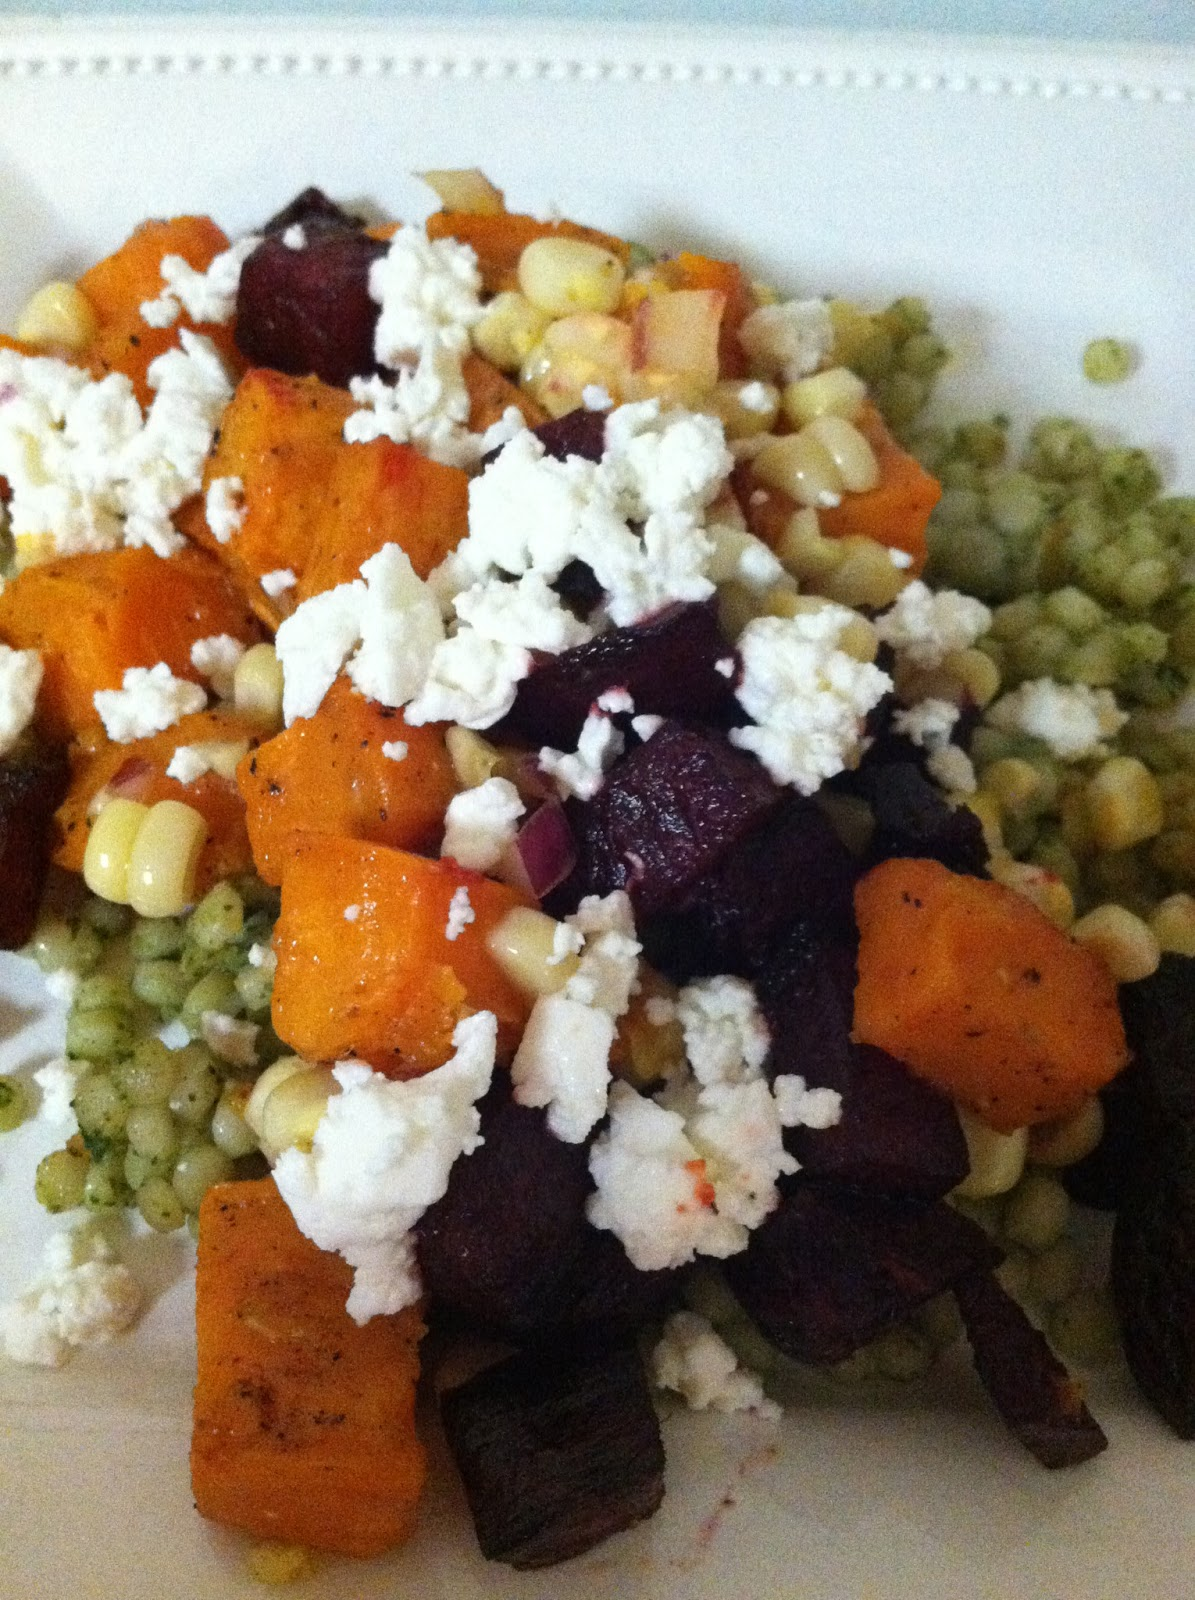 ... diapers: Roasted Sweet Potato, Beet and Corn Salad + Israeli Couscous